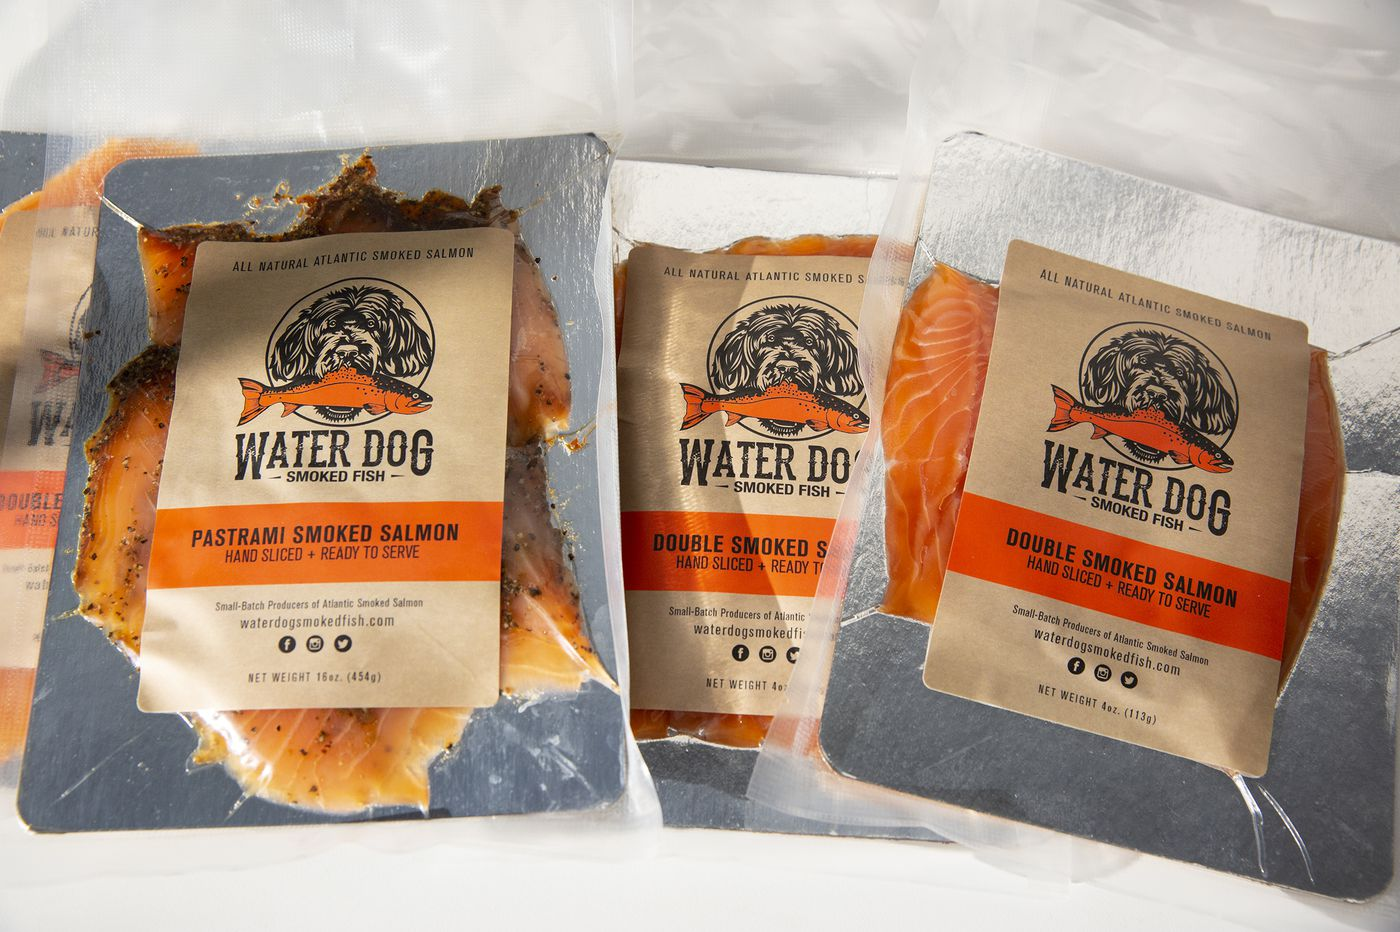 Water Dog is smoked salmon with Jersey Shore spirit